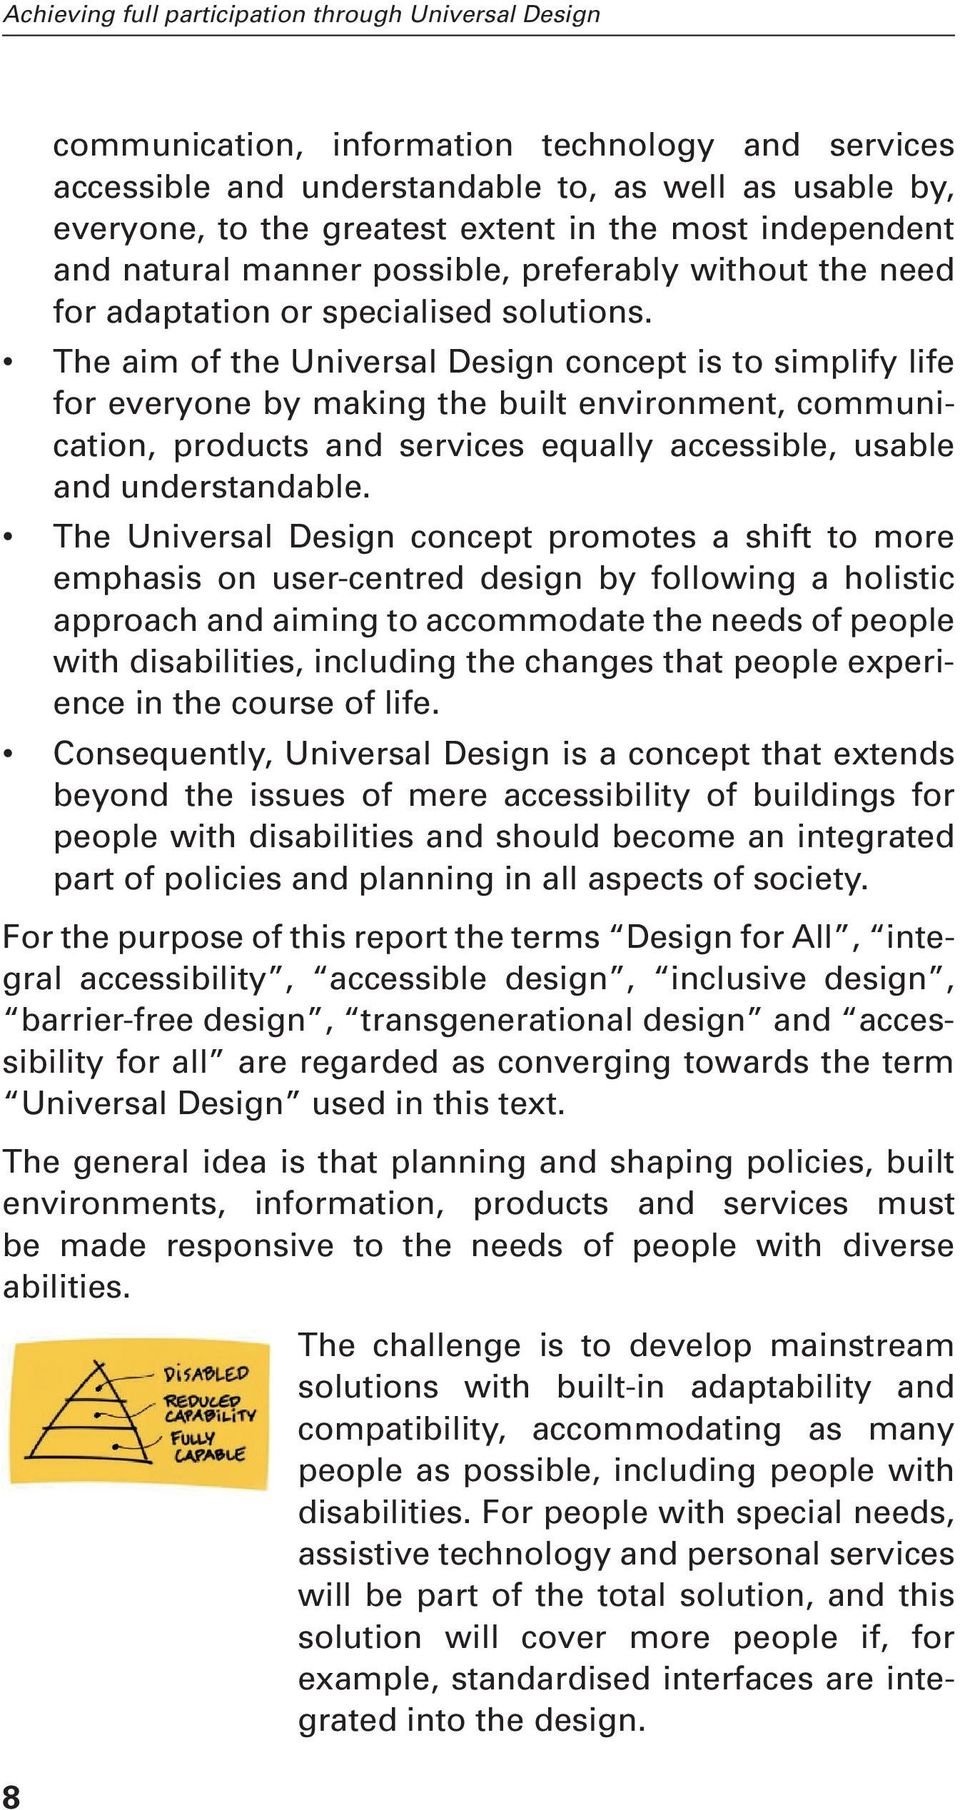 The aim of the Universal Design concept is to simplify life for everyone by making the built environment, communication, products and services equally accessible, usable and understandable.